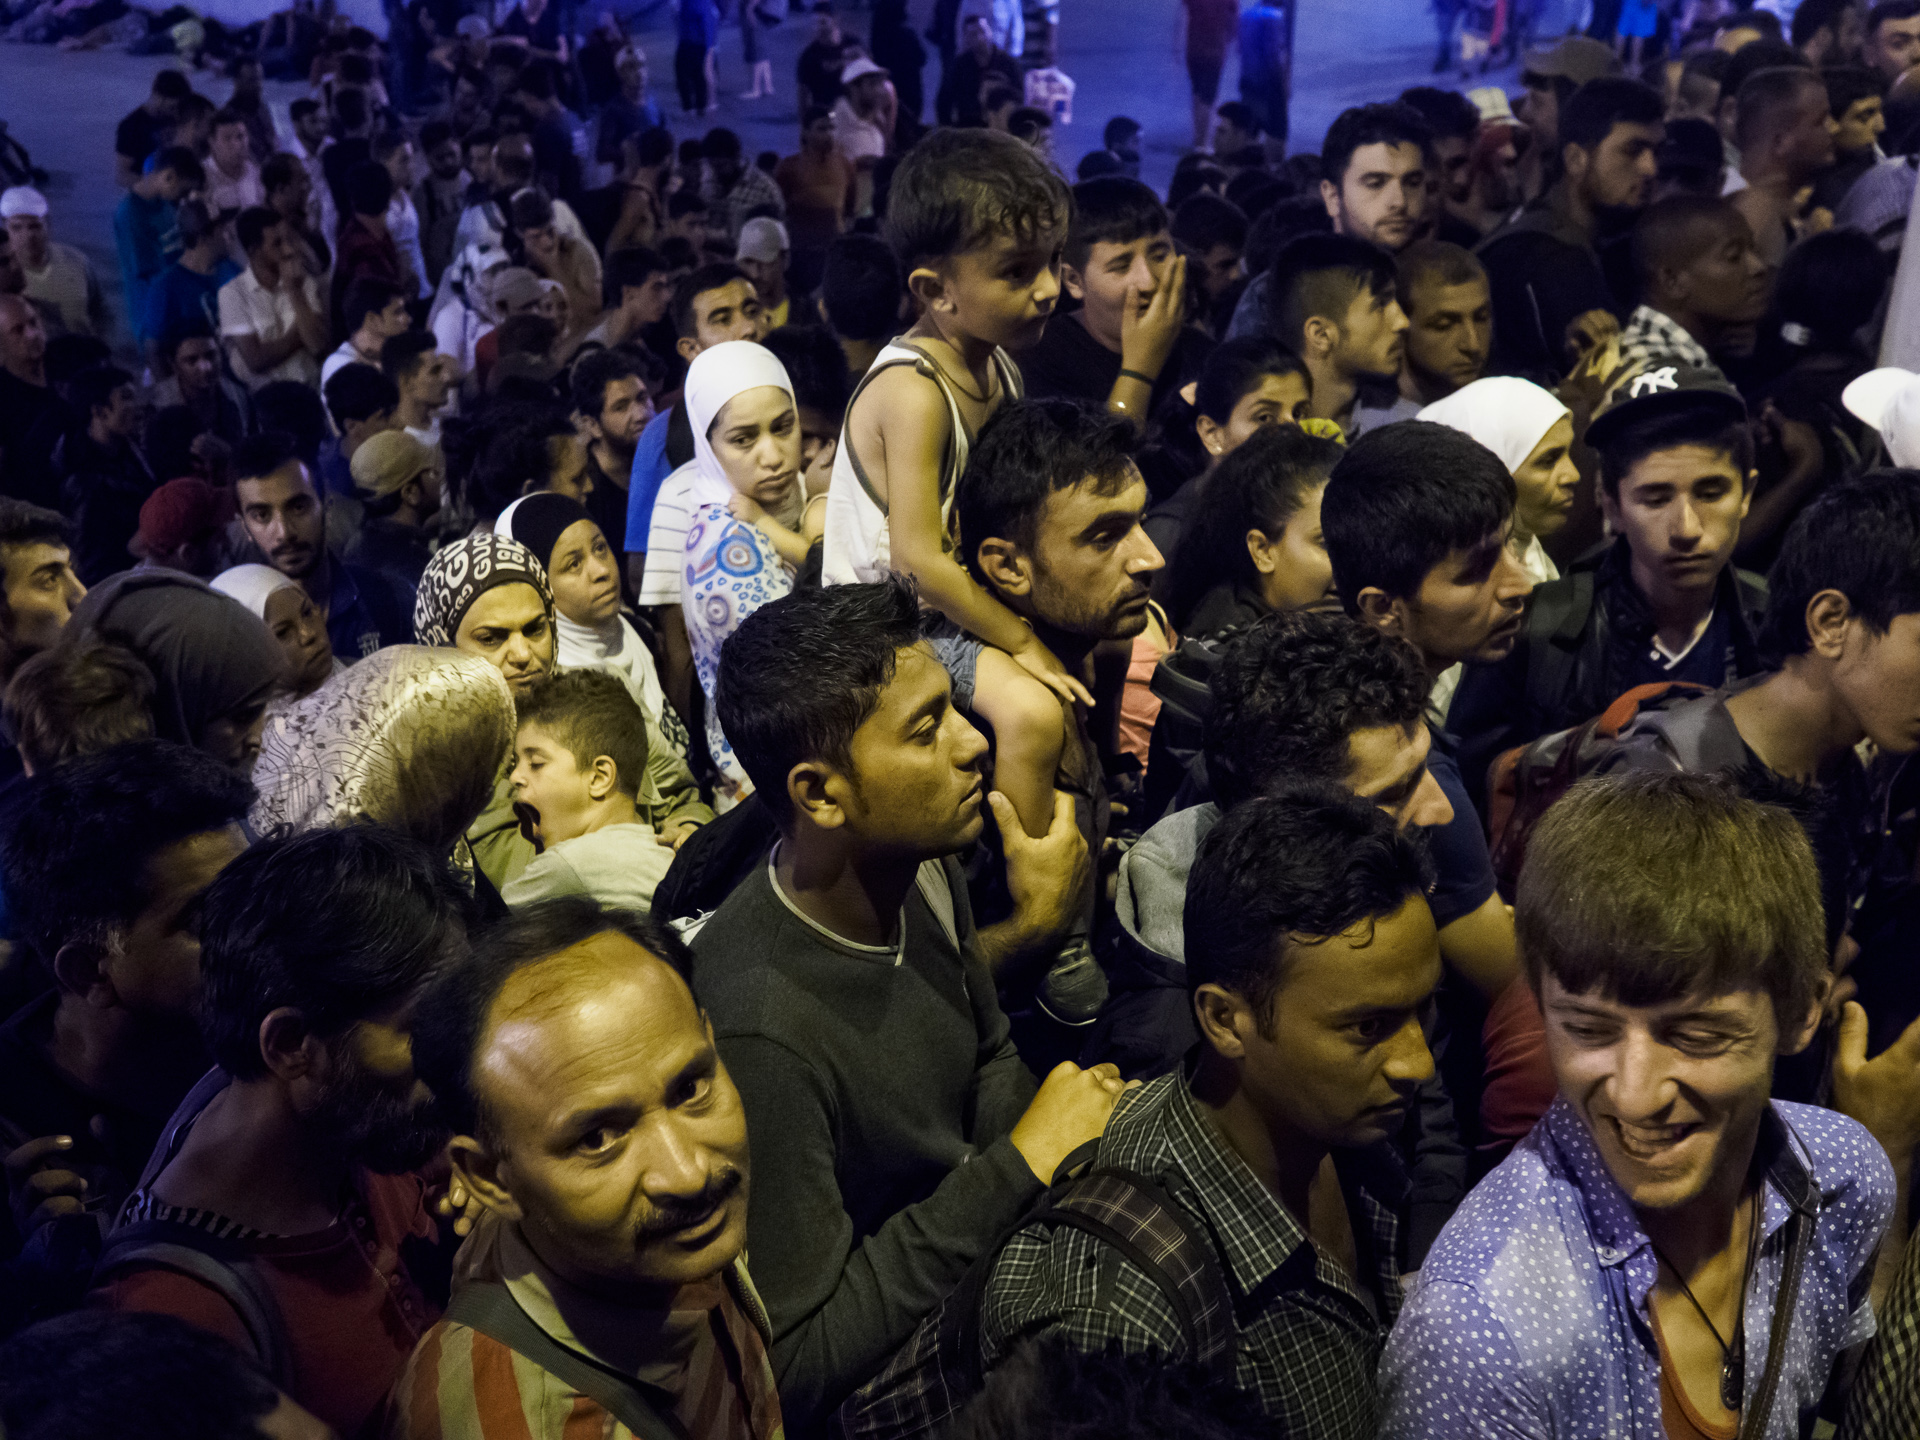 As refugees queued in front of the station's main door to be sure to have a space on the trains leaving for Germany, authorities announced they would not be able to board the trains. [Lazar Simeonov/Al Jazeera]